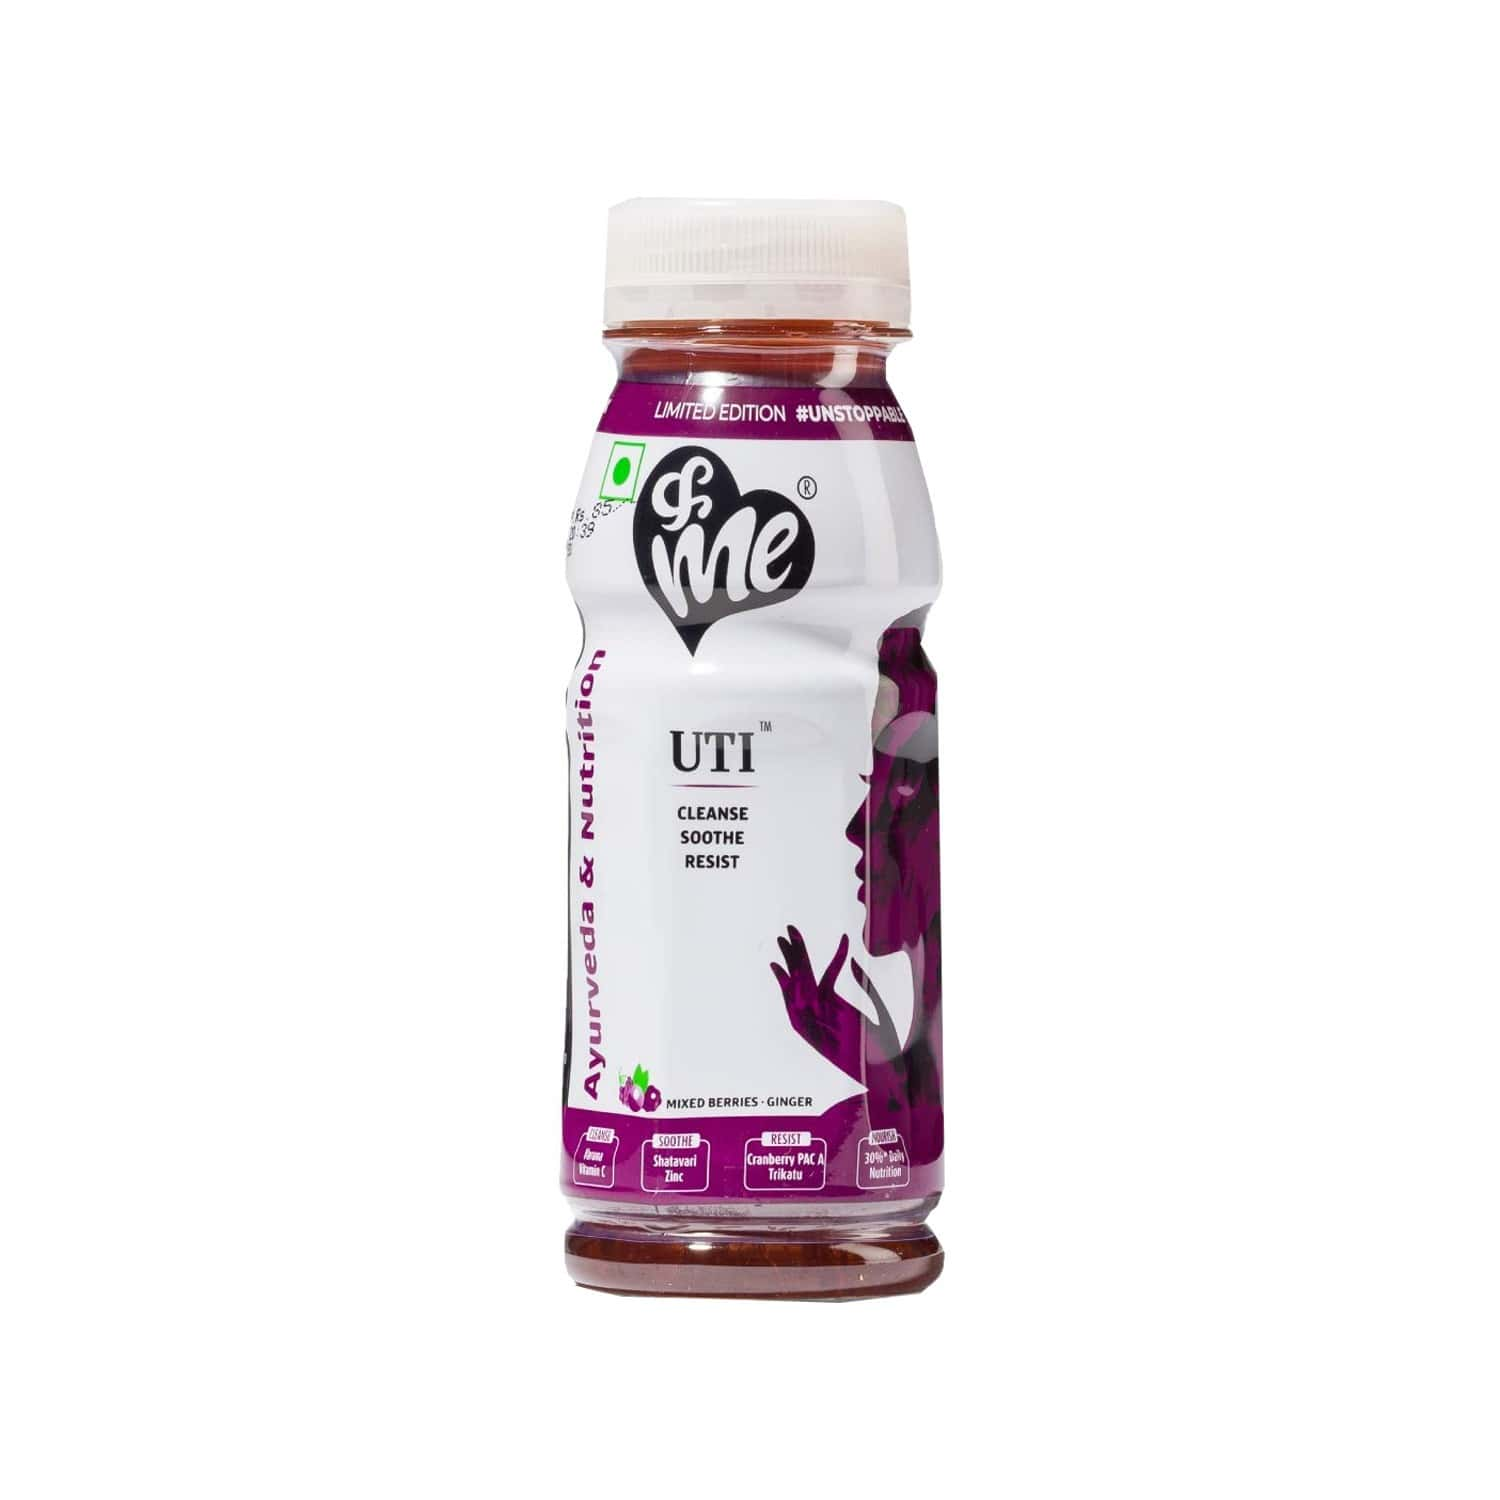 Andme Mixed Berries - Ginger Herbal Drink For Uti With No Added Sugar - 200 Ml